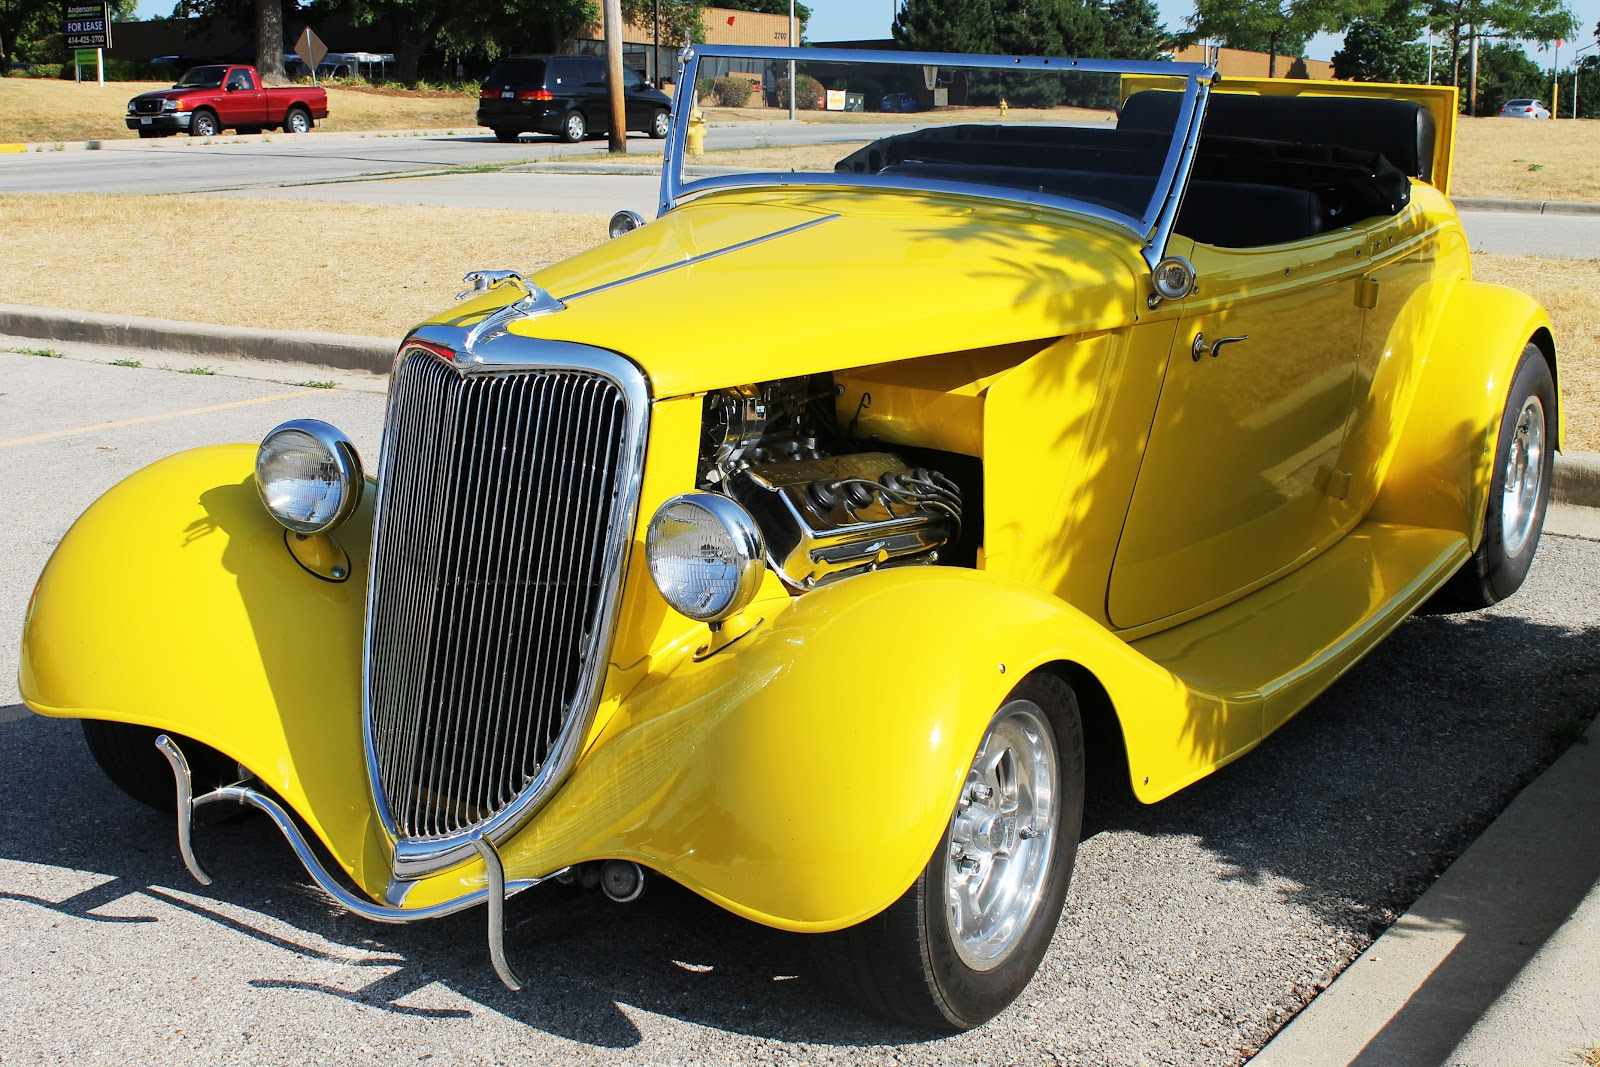 Midwestern City Girl: Classic Car Wednesday in Waukesha